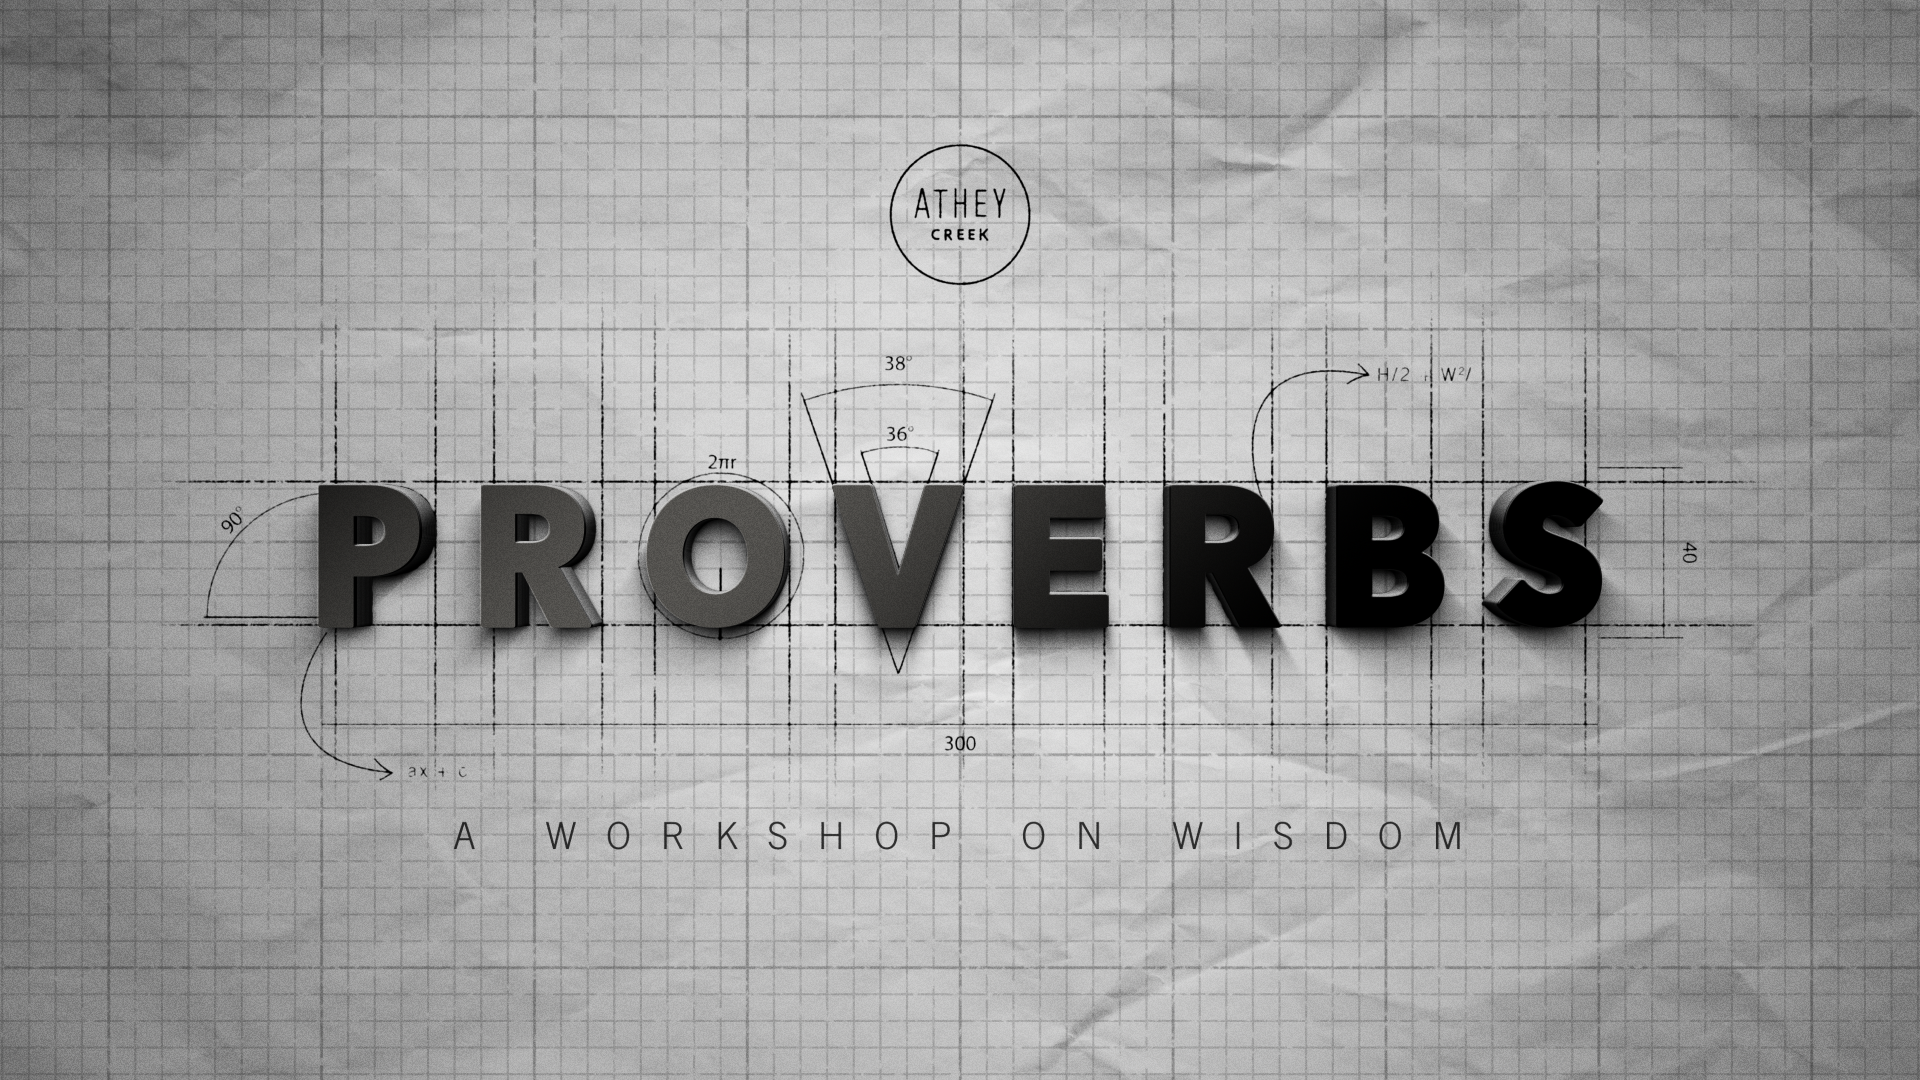 Teaching artwork for Proverbs